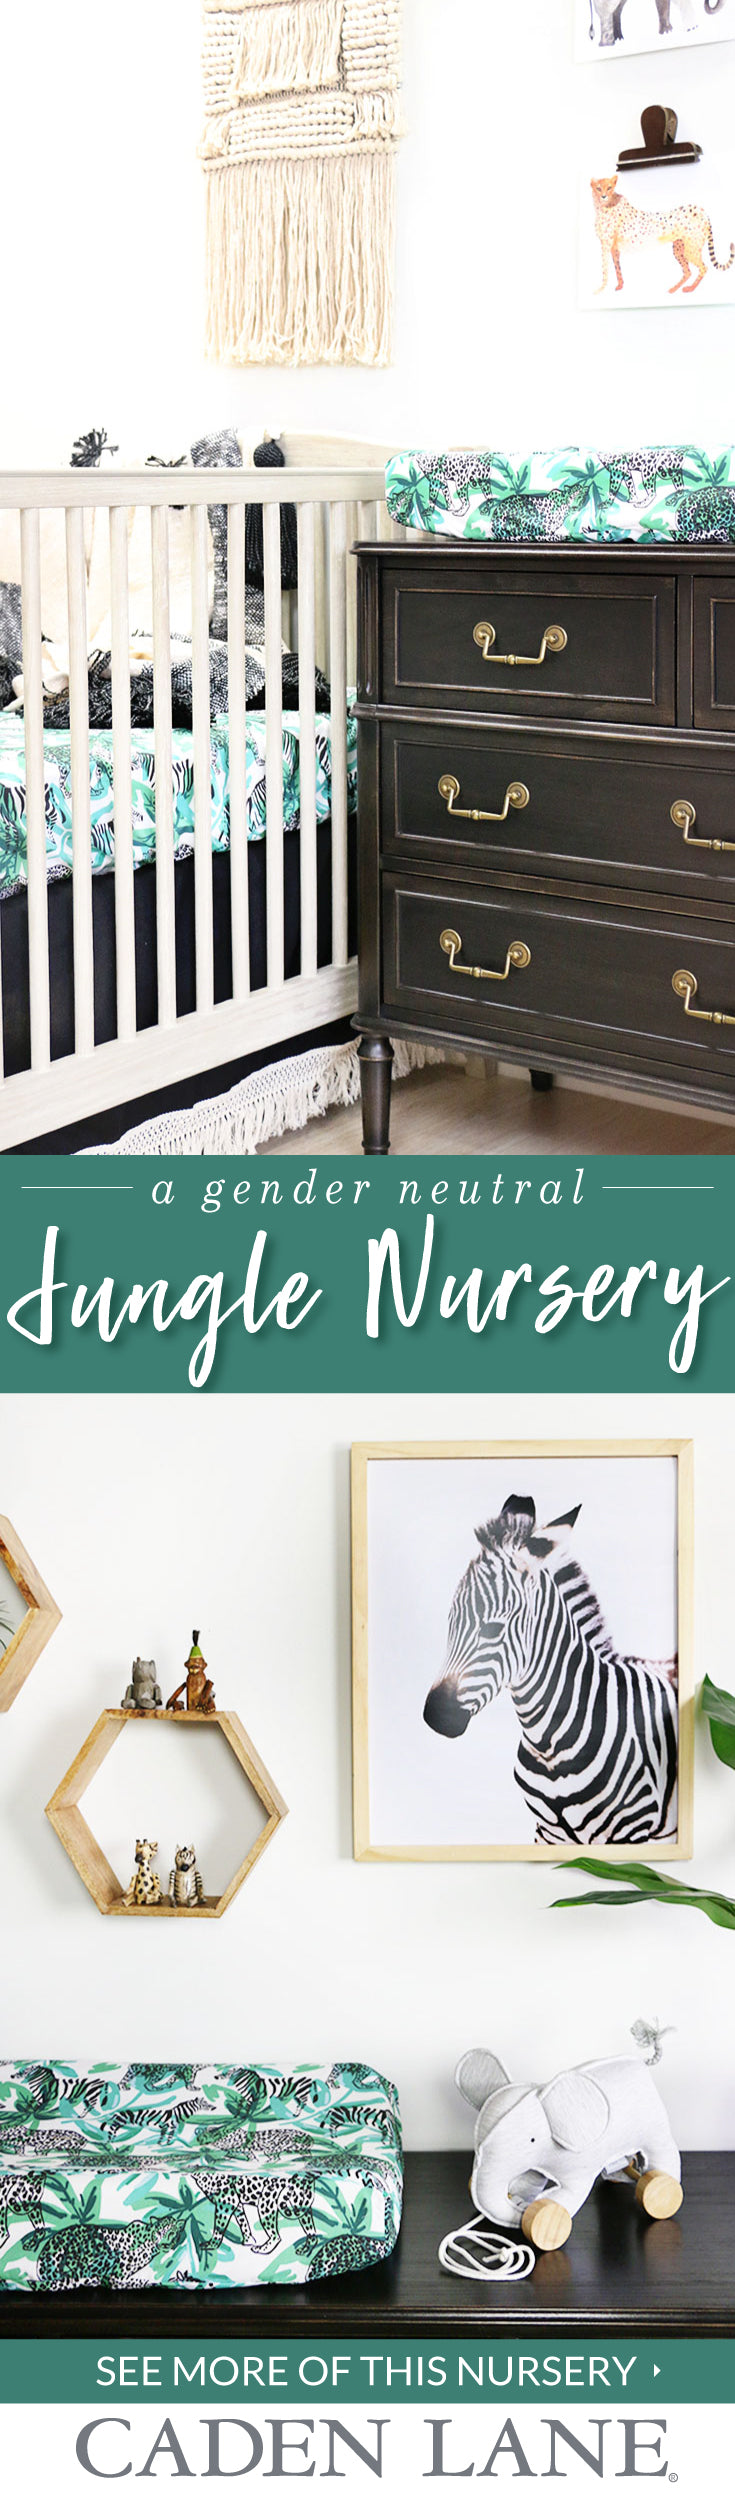 The most adorable jungle safari nursery in modern shades of green, black & white!